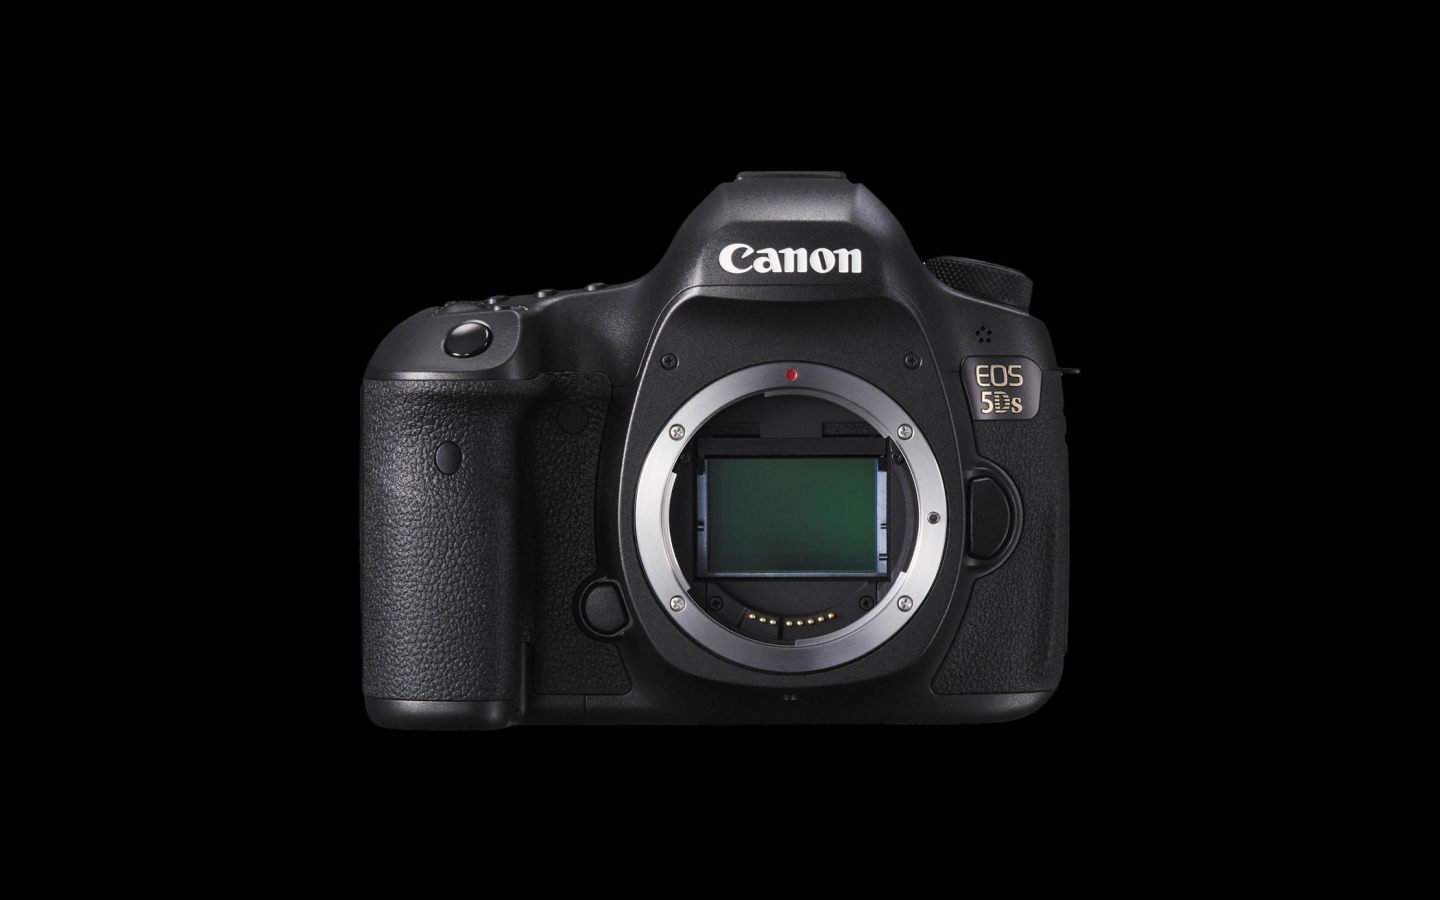 canon eos 5ds dslr camera1 1440x900 READY FOR THE CANON 5Ds?